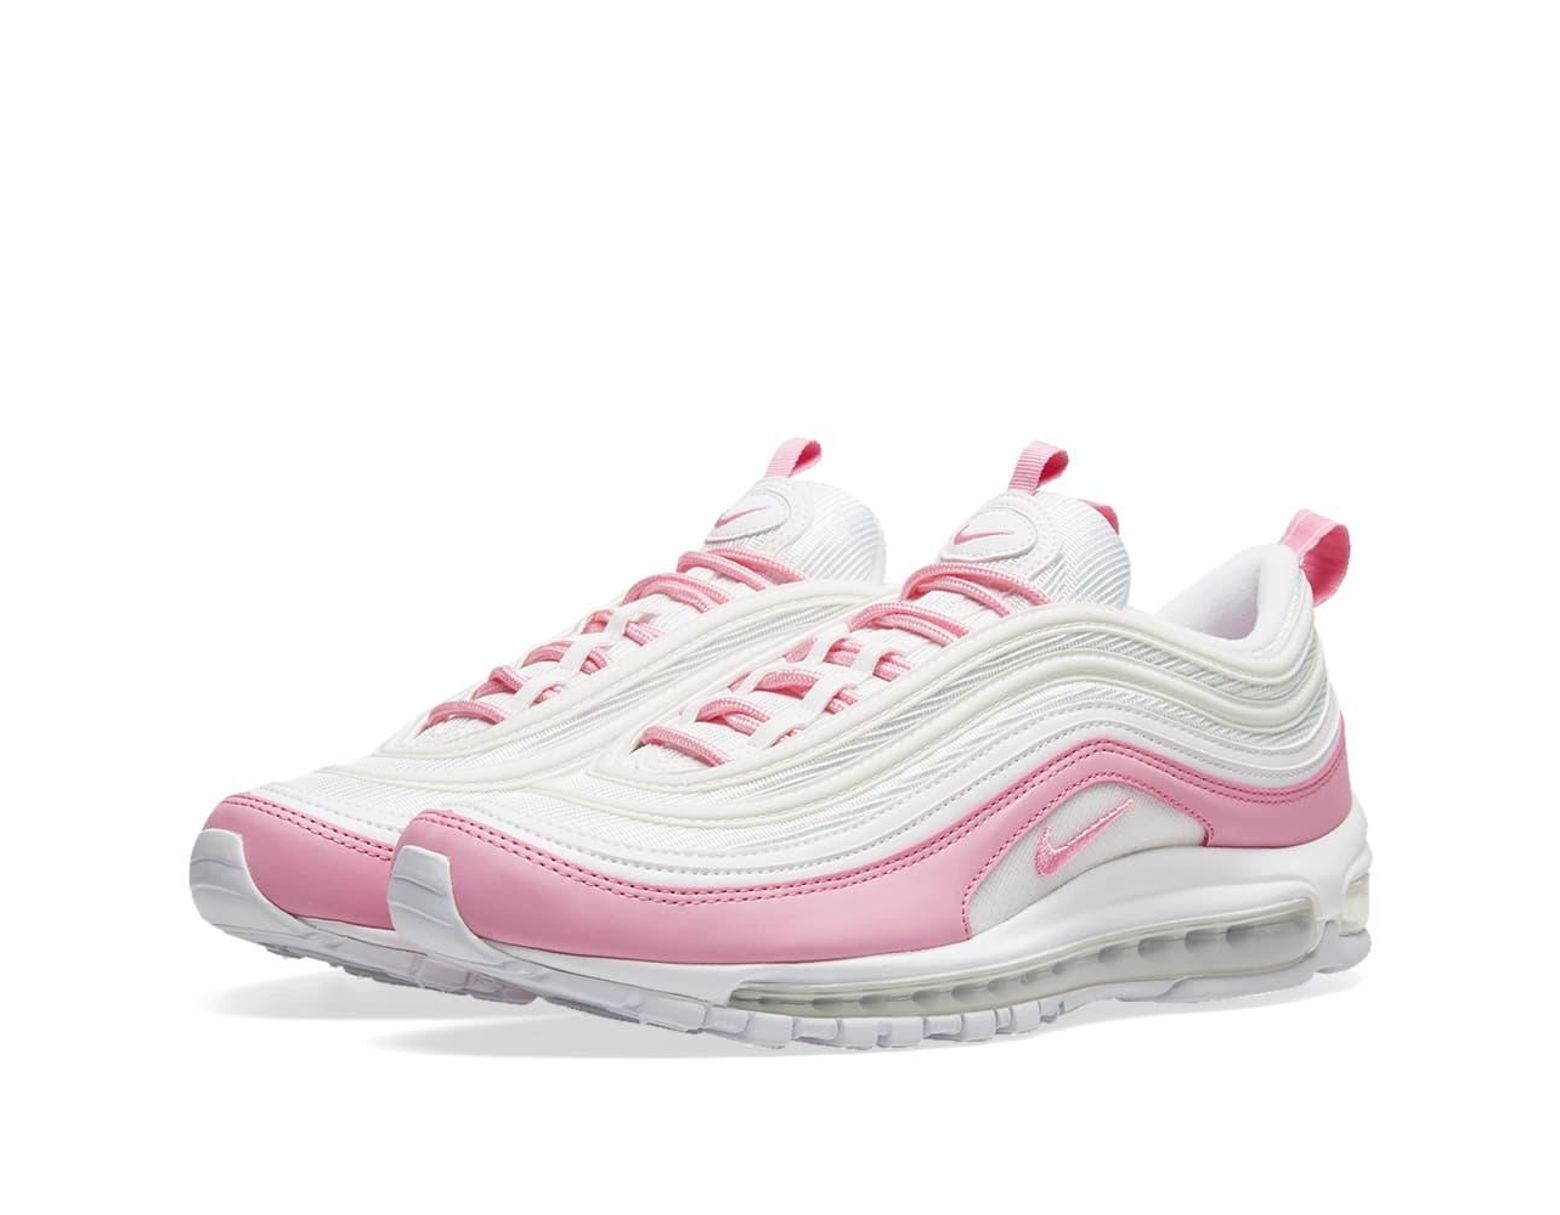 Nike Air Max 97 W shoes pink